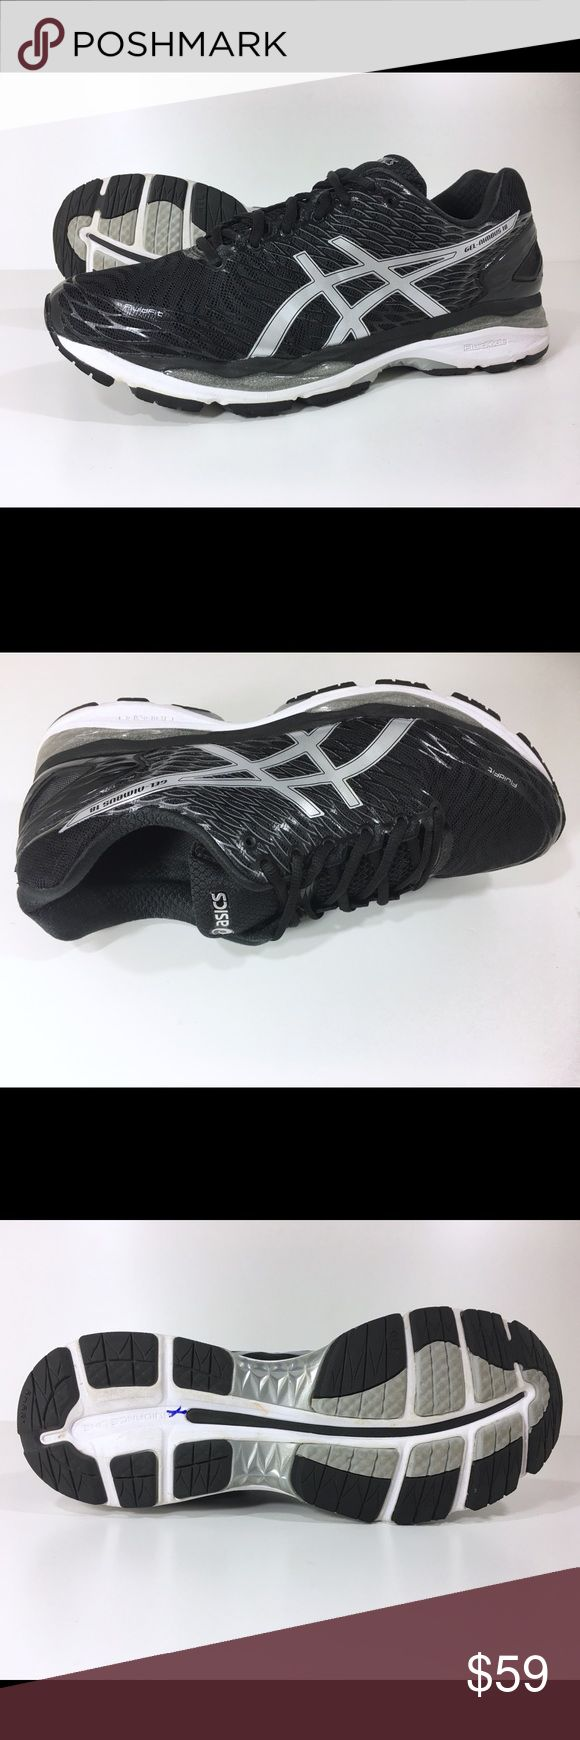 Asics Men Gel-Nimbus 18 Running Shoe 12.5 D Black Asics Men's Gel-Nimbus 18 Running Shoes  Our Price: $59 Regular Price: $150 - save $91 (60%) _________________________________________  Size: 12.5 (D, M)  Color: Black _________________________________________  Condition: Excellent _________________________________________  Features & details  • Synthetic, Mesh  • Import  • Gel cushioning  • EVA foam midsole  • Rubber outer sole  • Lightweight  • Breathable   Product information  Men's  Asics…